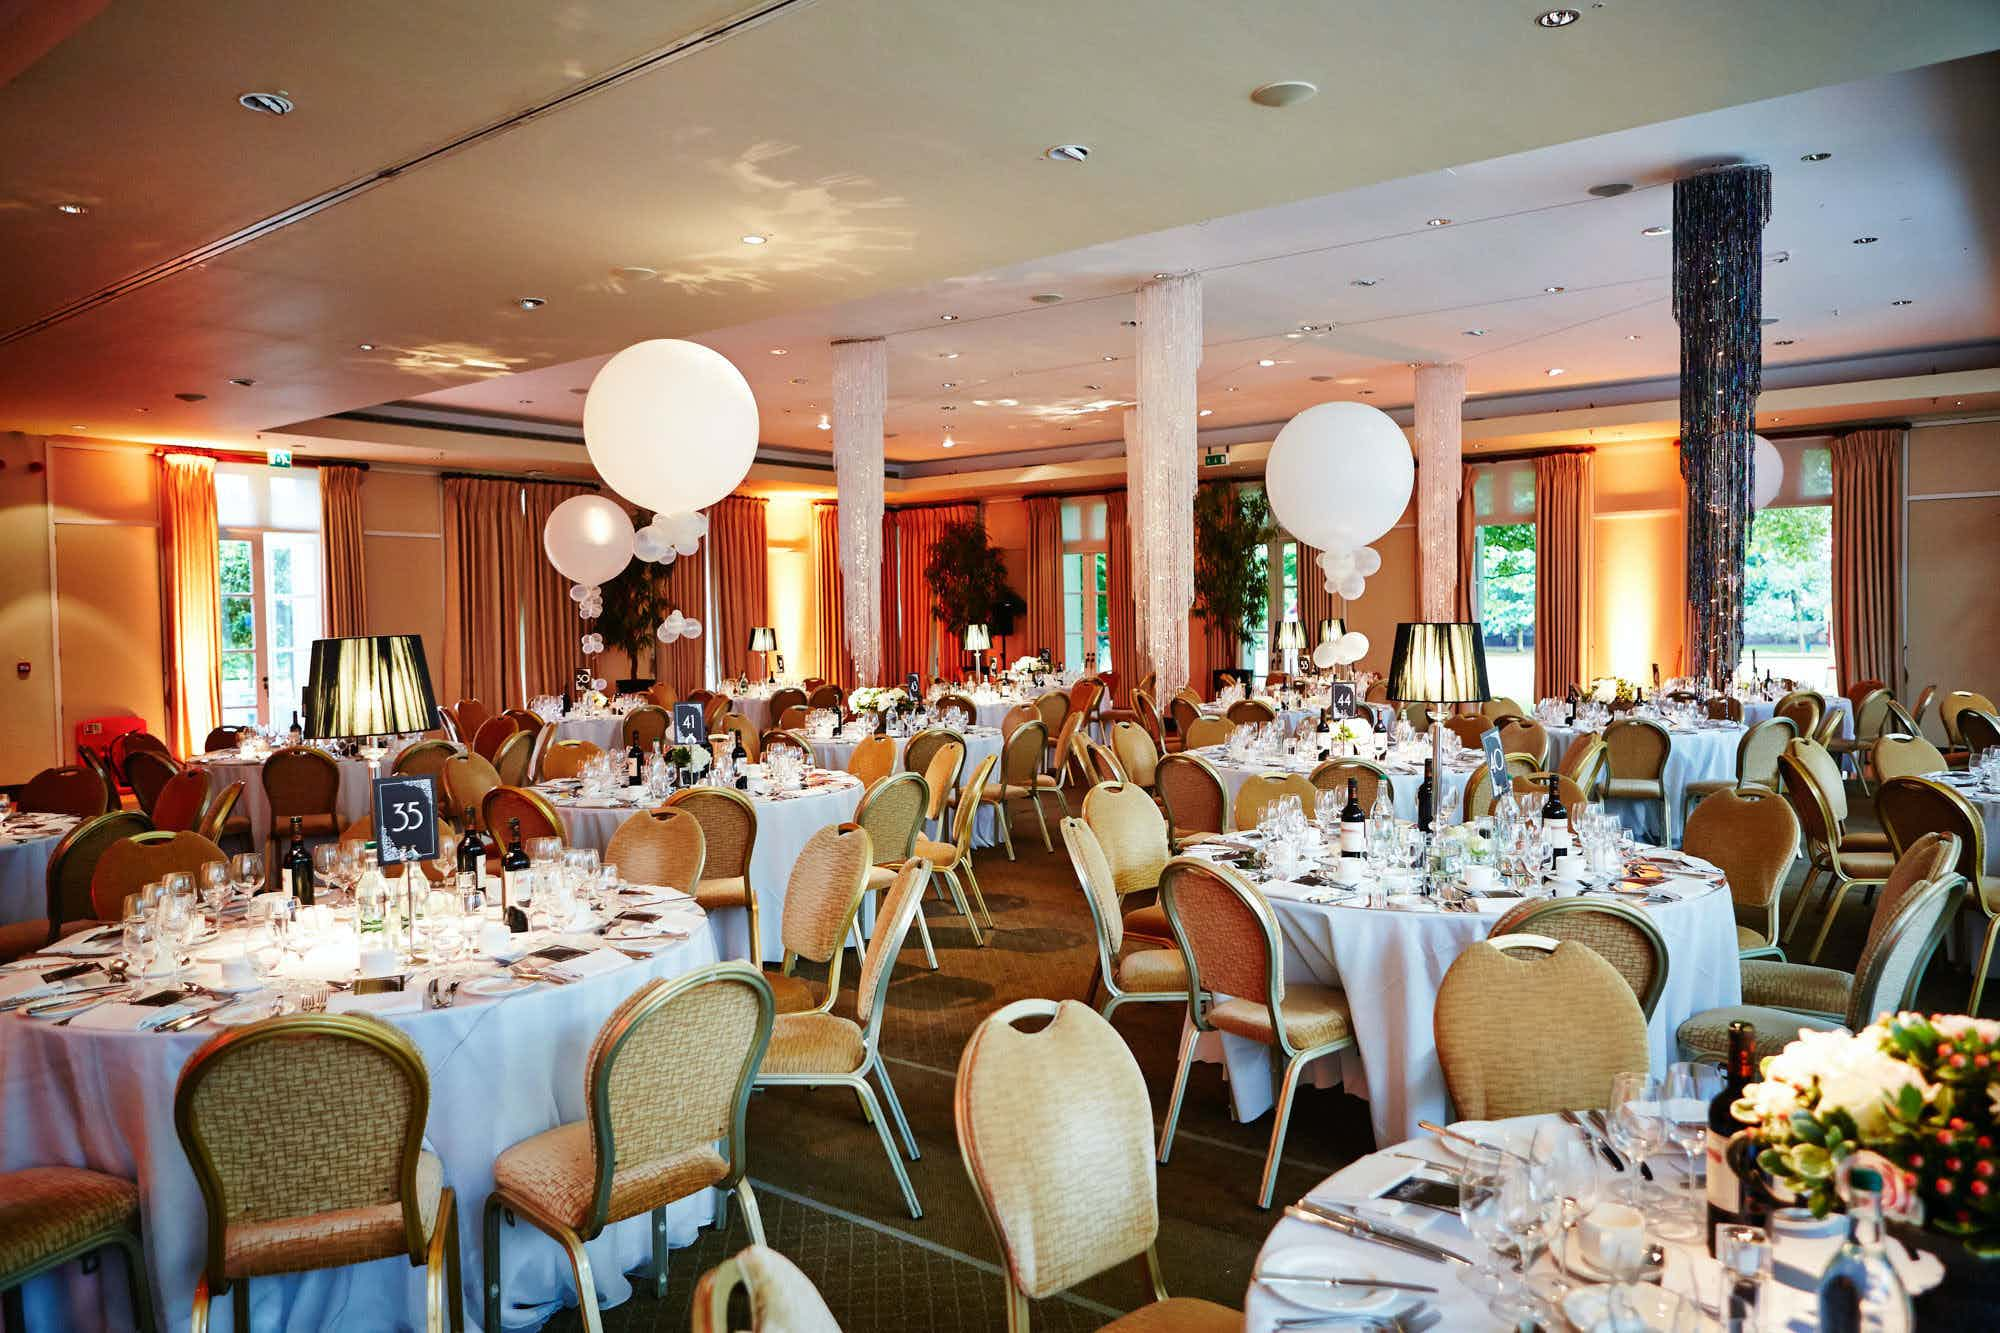 Broomhouse Suite, The Hurlingham Club